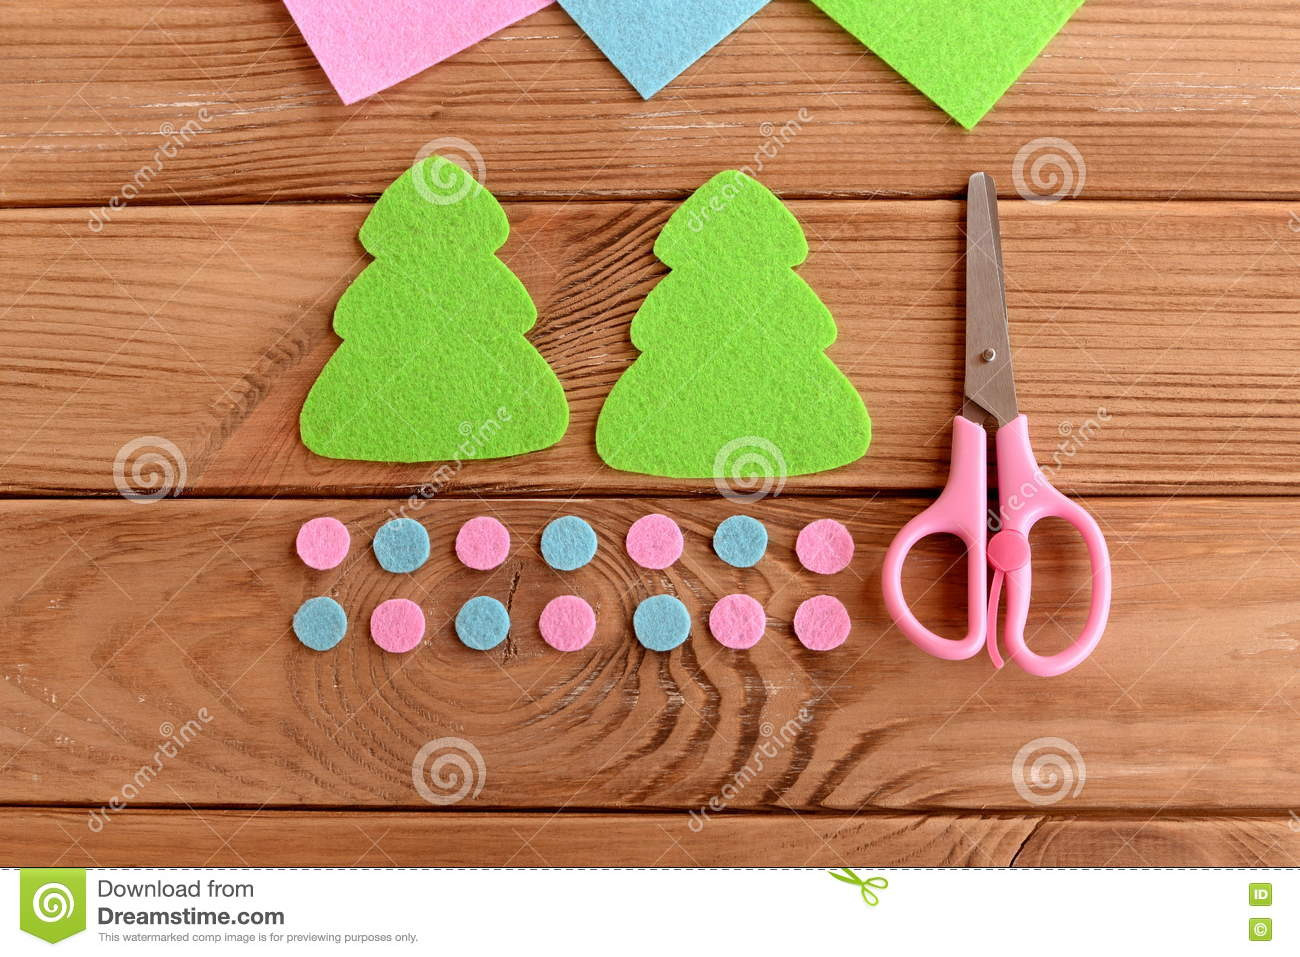 Green Felt Christmas Tree Patterns Pink And Blue Balls Scissors On Wooden Background Master Class For Kids Step Stock Image Image Of Circles Hanging 75175993